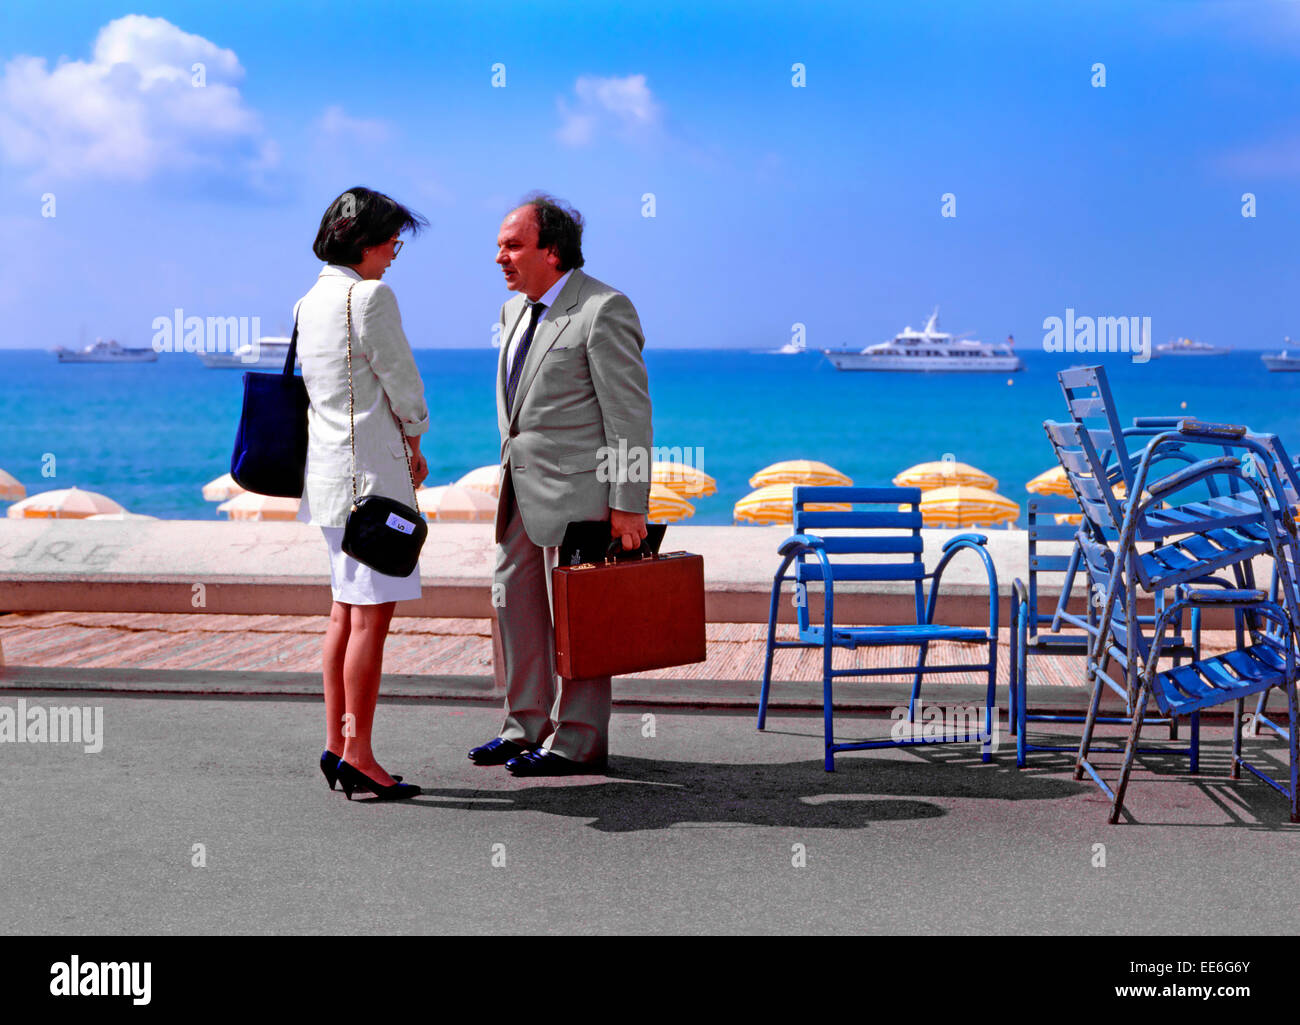 Cannes, Cote d'Azur, France. Businessman talking to younger woman by the seafront. Yachts behind - Stock Image